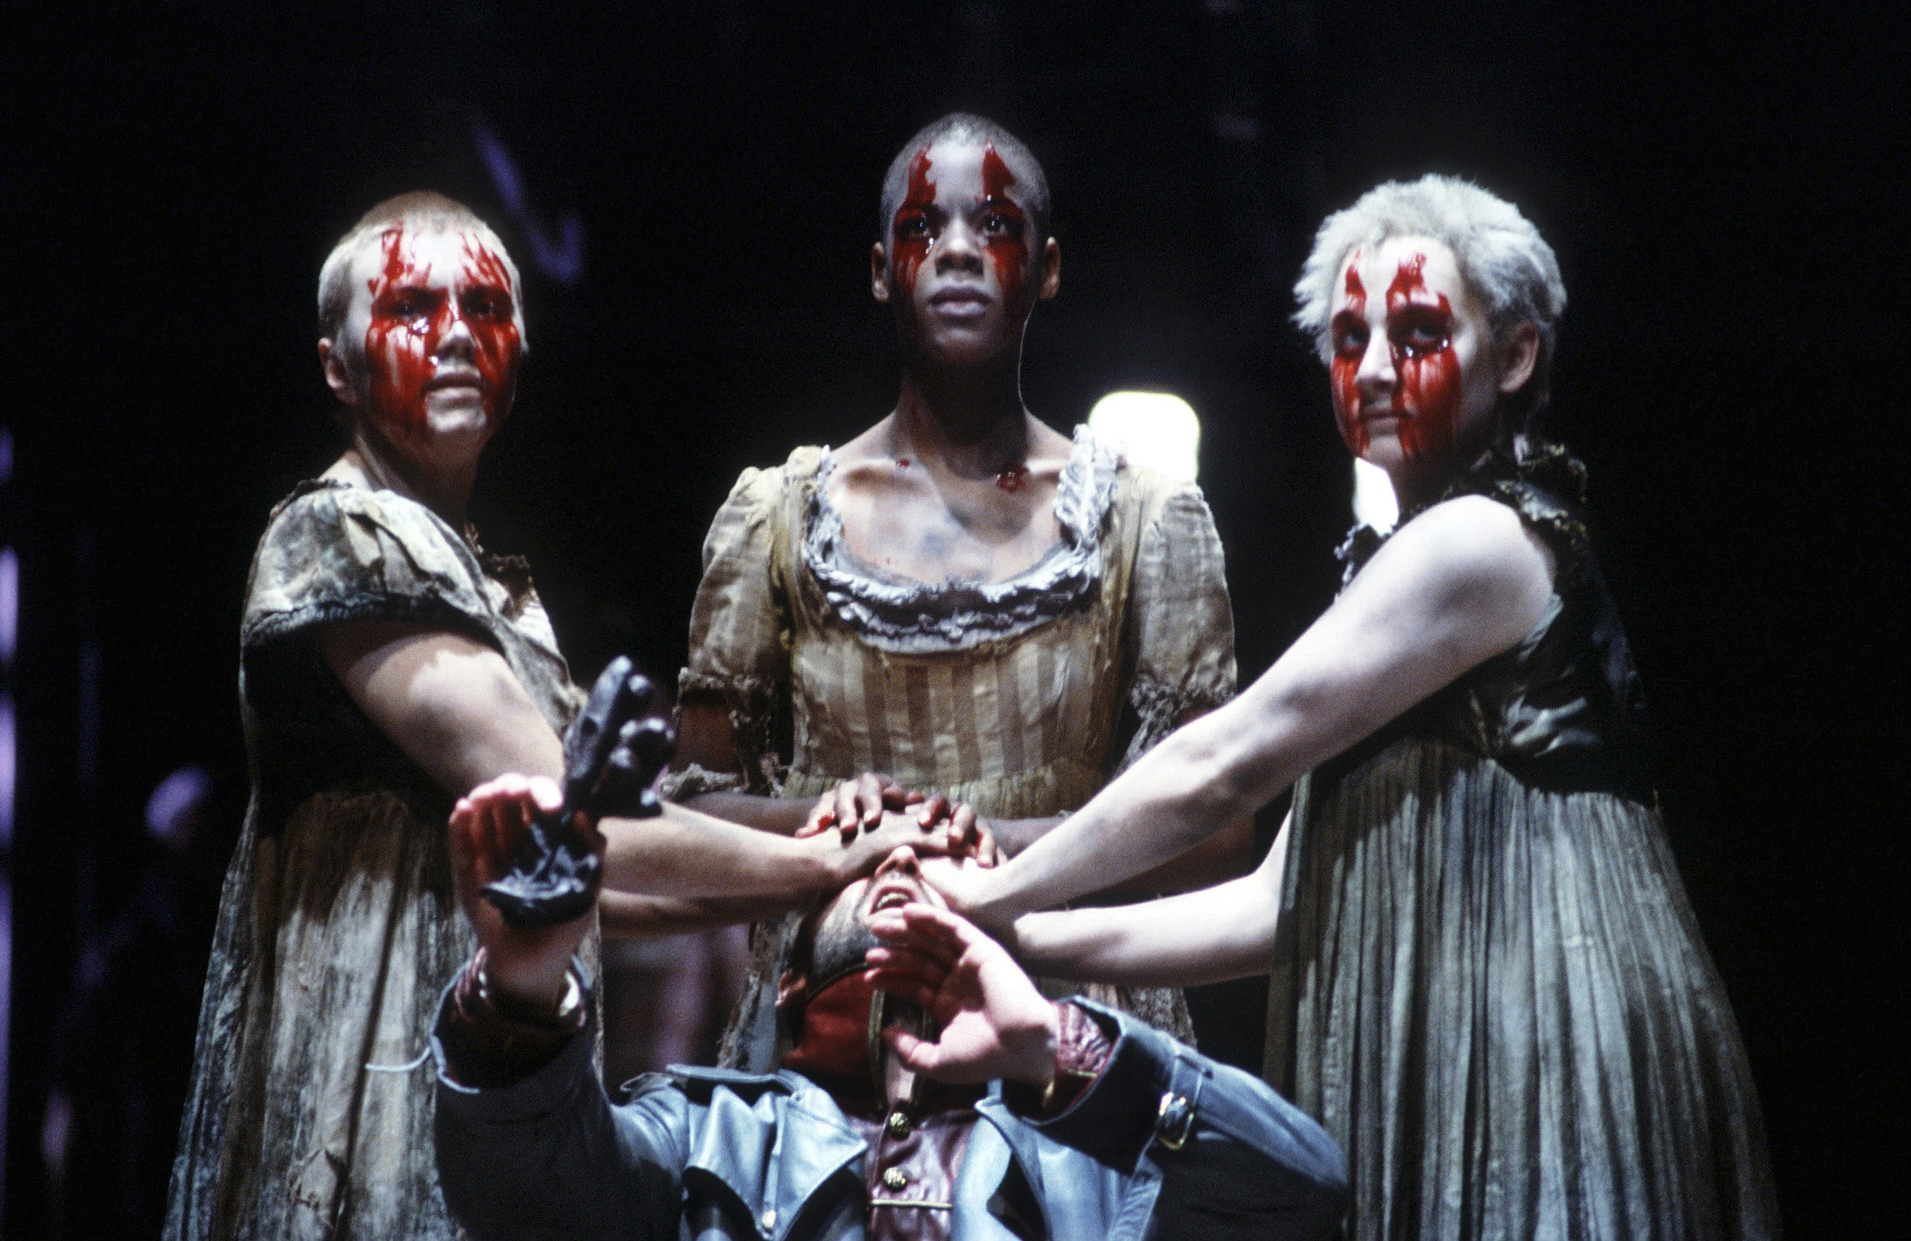 The three witches from Shakespeare's Macbeth.